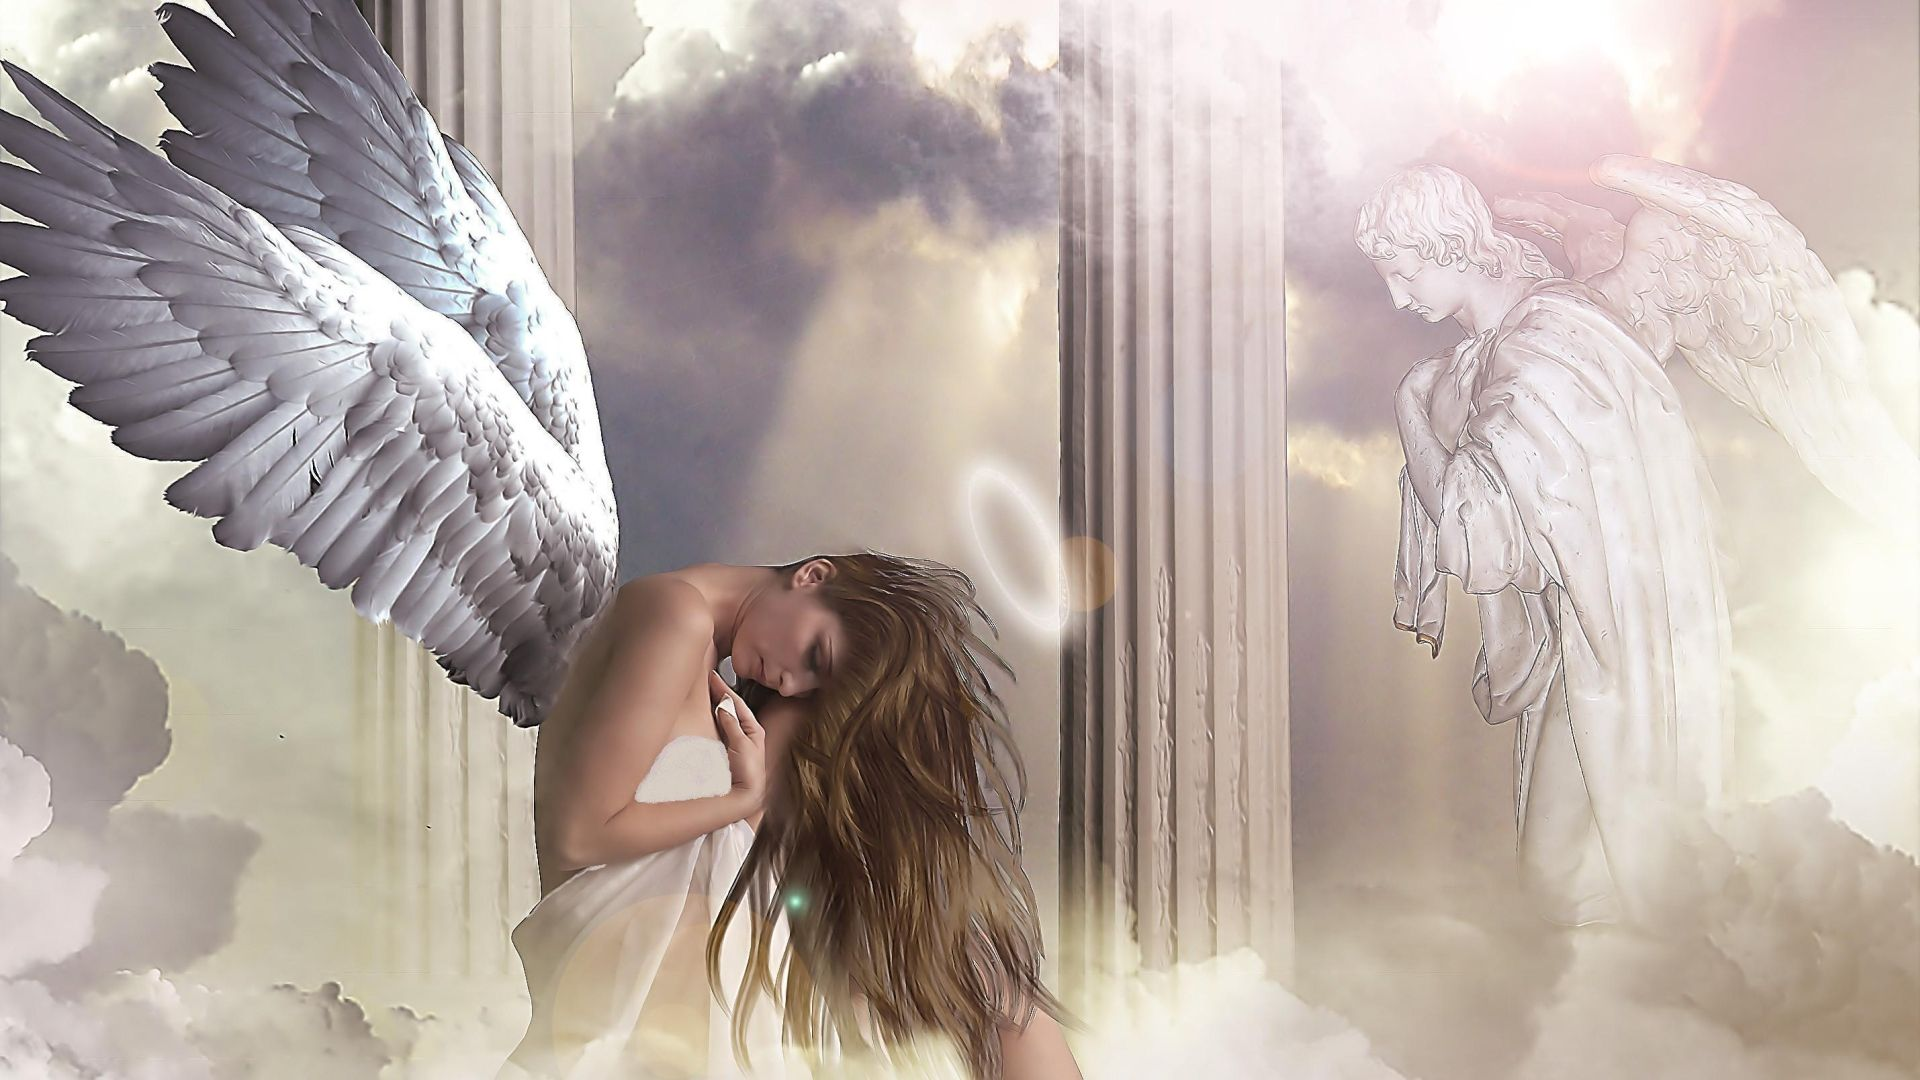 Pictures Of Angels With Wings